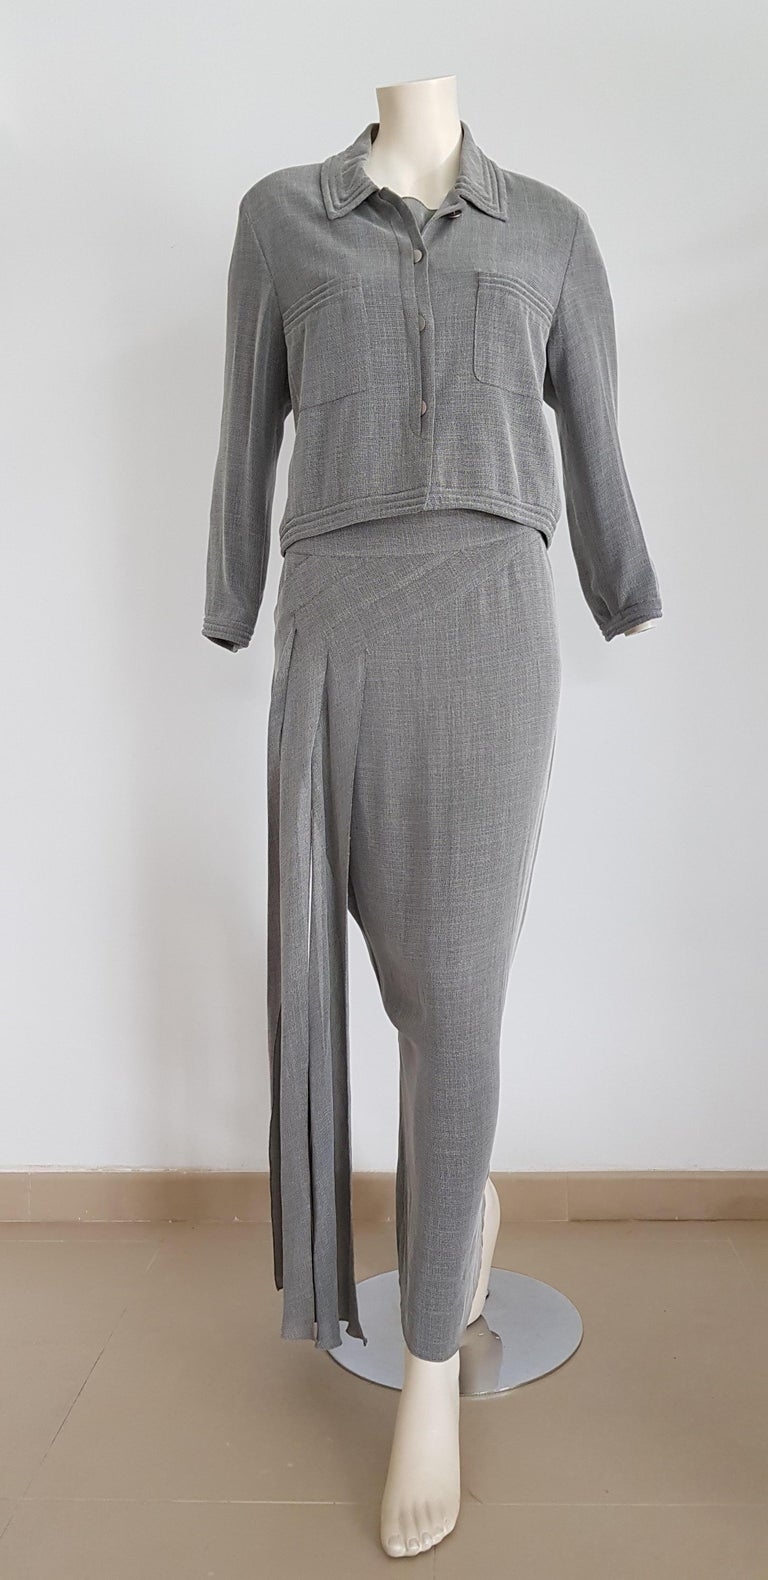 CHANEL Couture jacket and long dress Silk grey coktail suit - Unworn, New.  SIZE: equivalent to about Small / Medium, please review approx measurements as follows in cm.  JACKET: lenght 55, chest underarm to underarm 48, bust circumference 96,